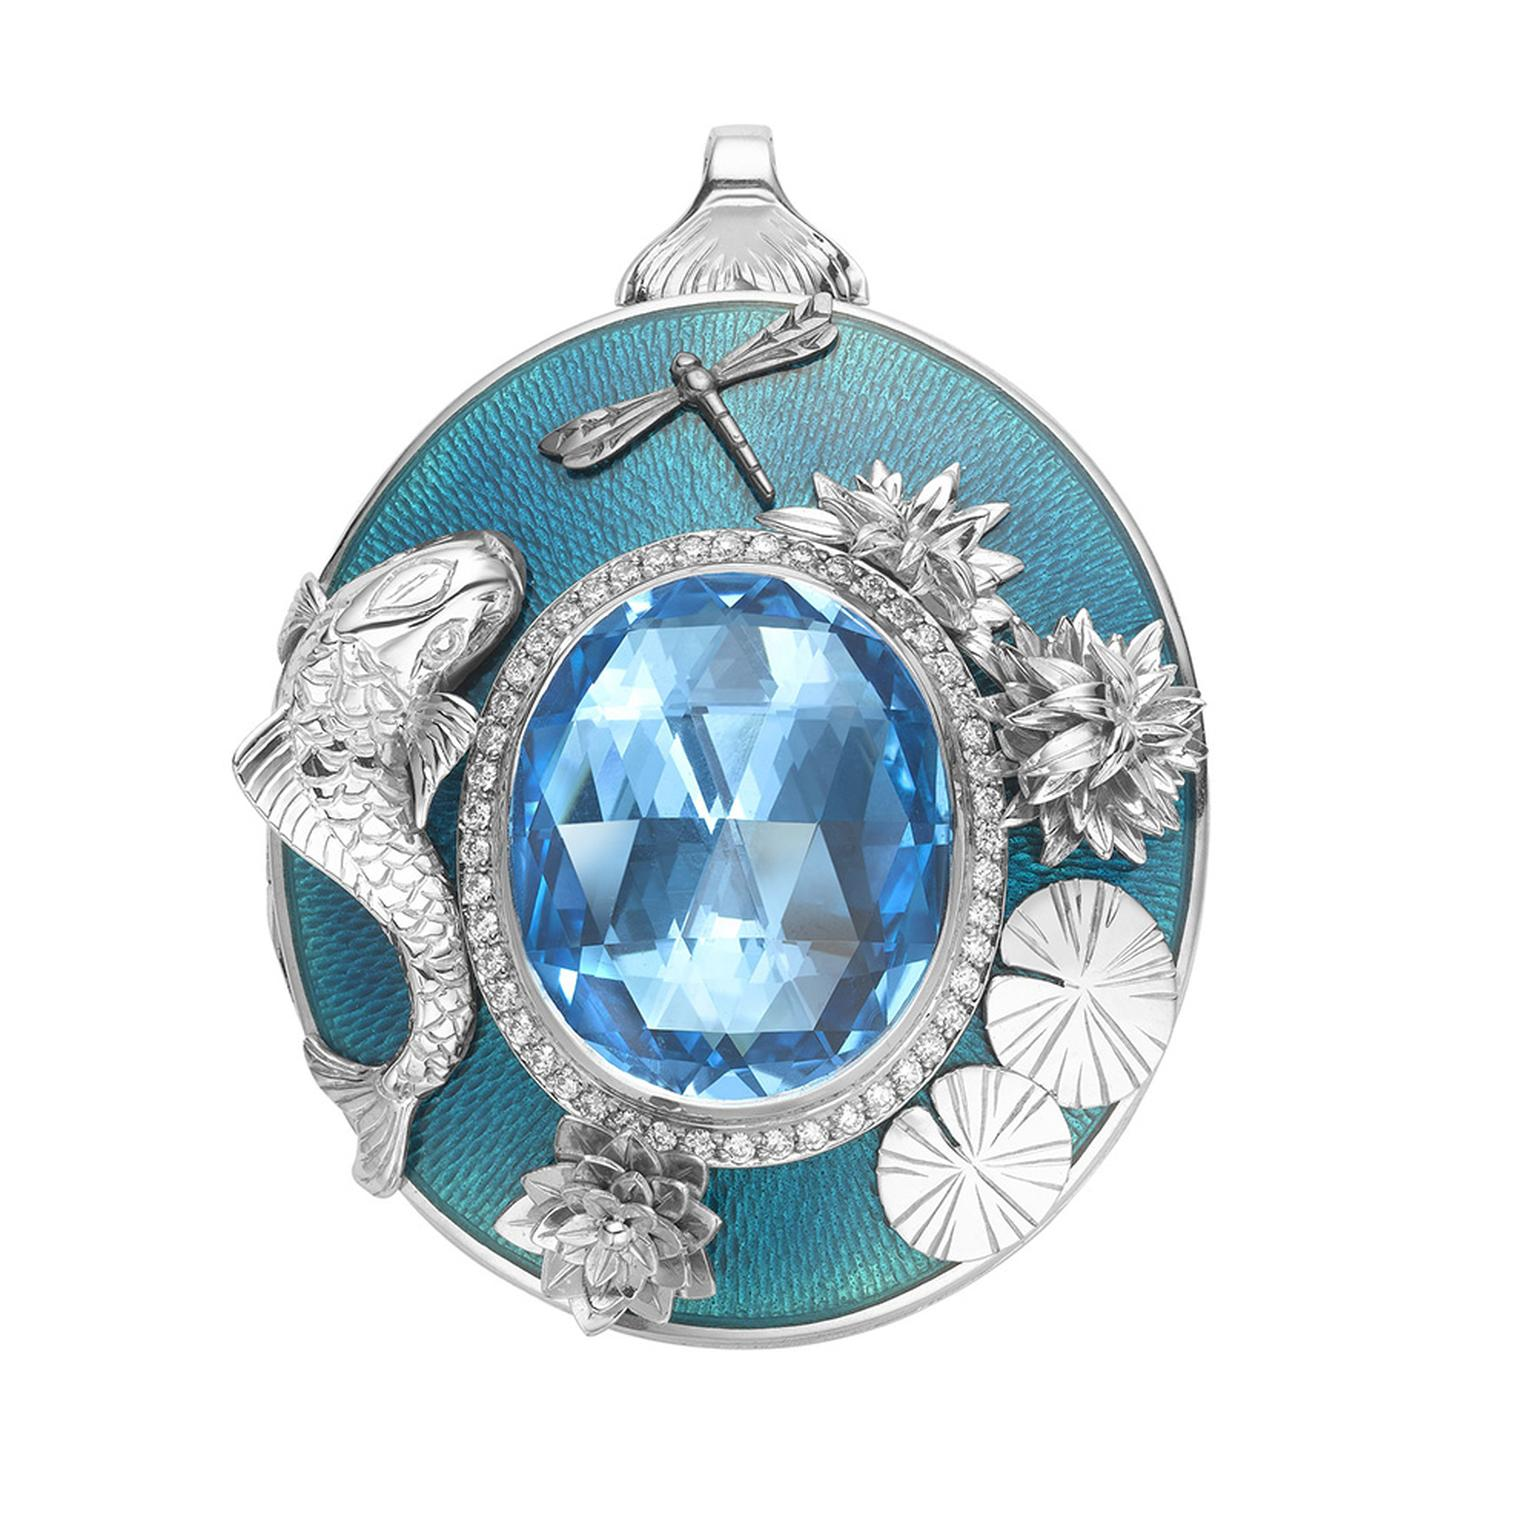 This 18ct white gold and enamel Theo Fennell locket pays homage to the Koi Carp. The front showcases a sea-blue 29.13ct topaz surrounded by diamonds and sealife, while the is engraved with a Koi Carp.